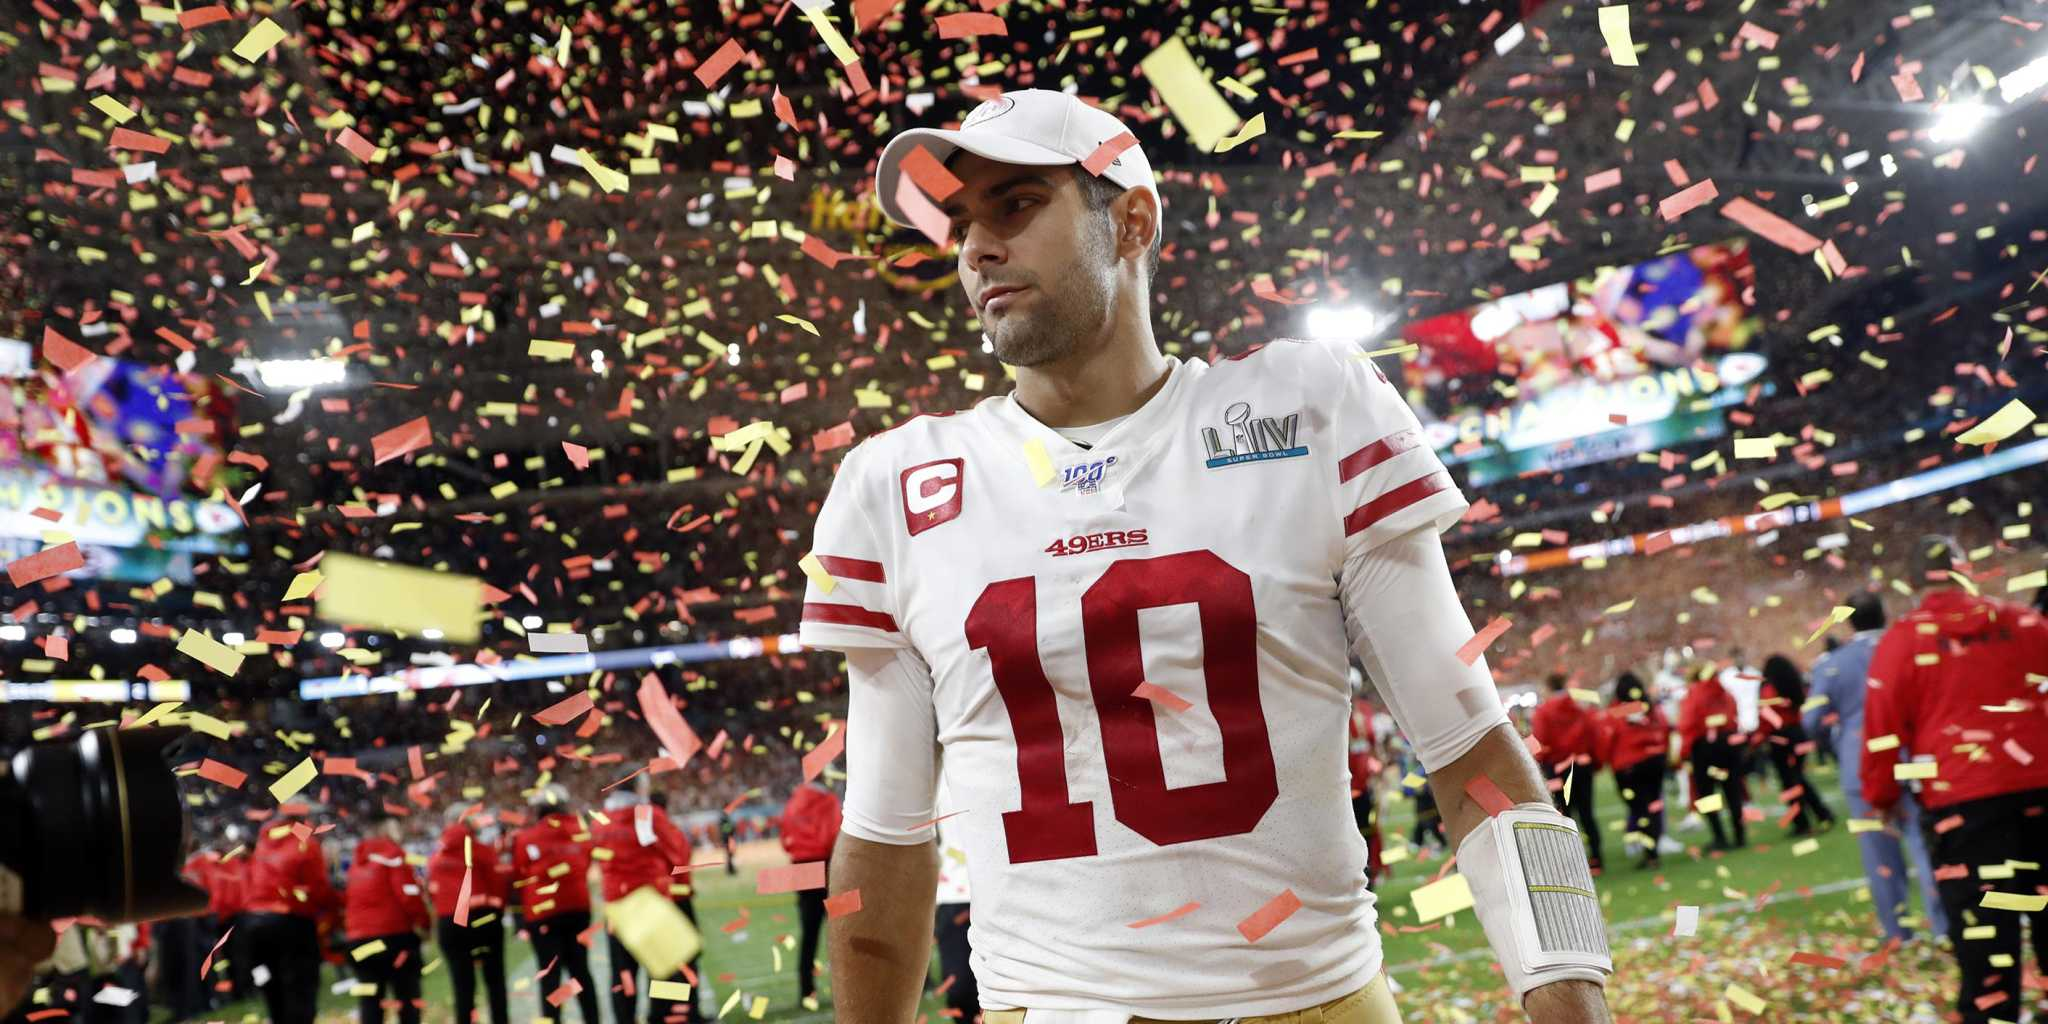 No party in Miami this time: 49ers can't hold off Chiefs, lose Super Bowl LIV